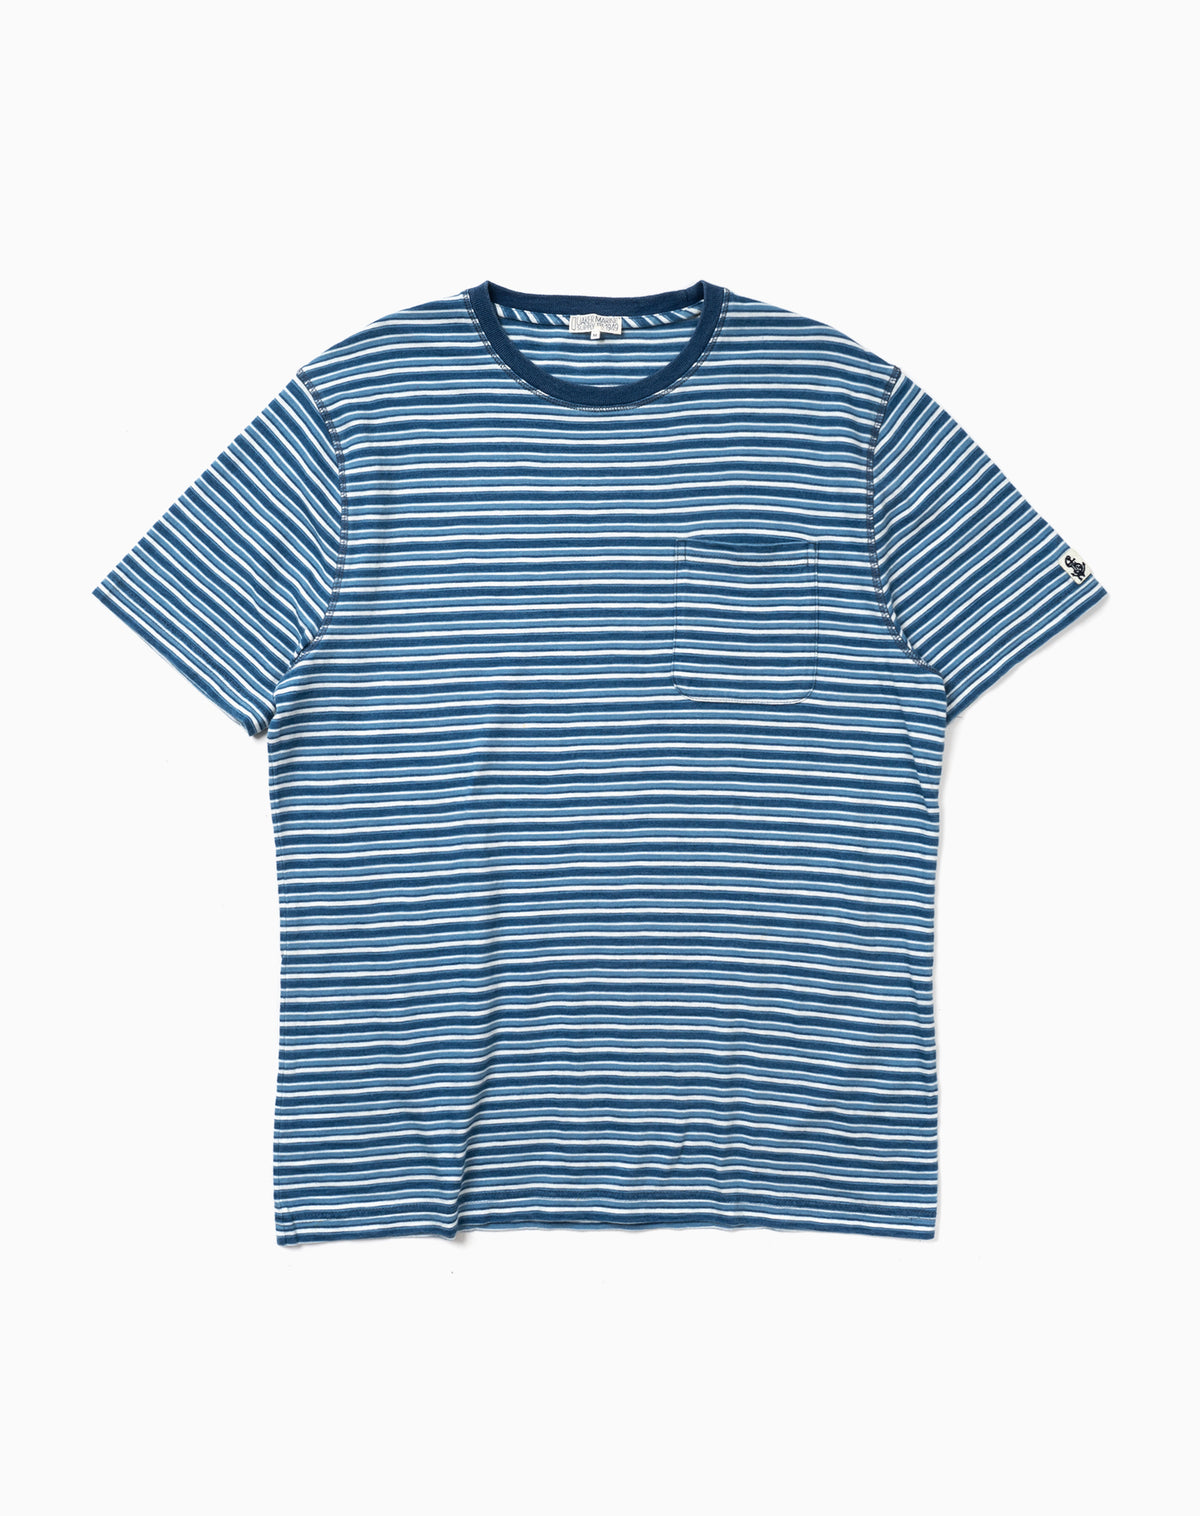 Indigo Pocket Tee in Multi-Blue Stripe